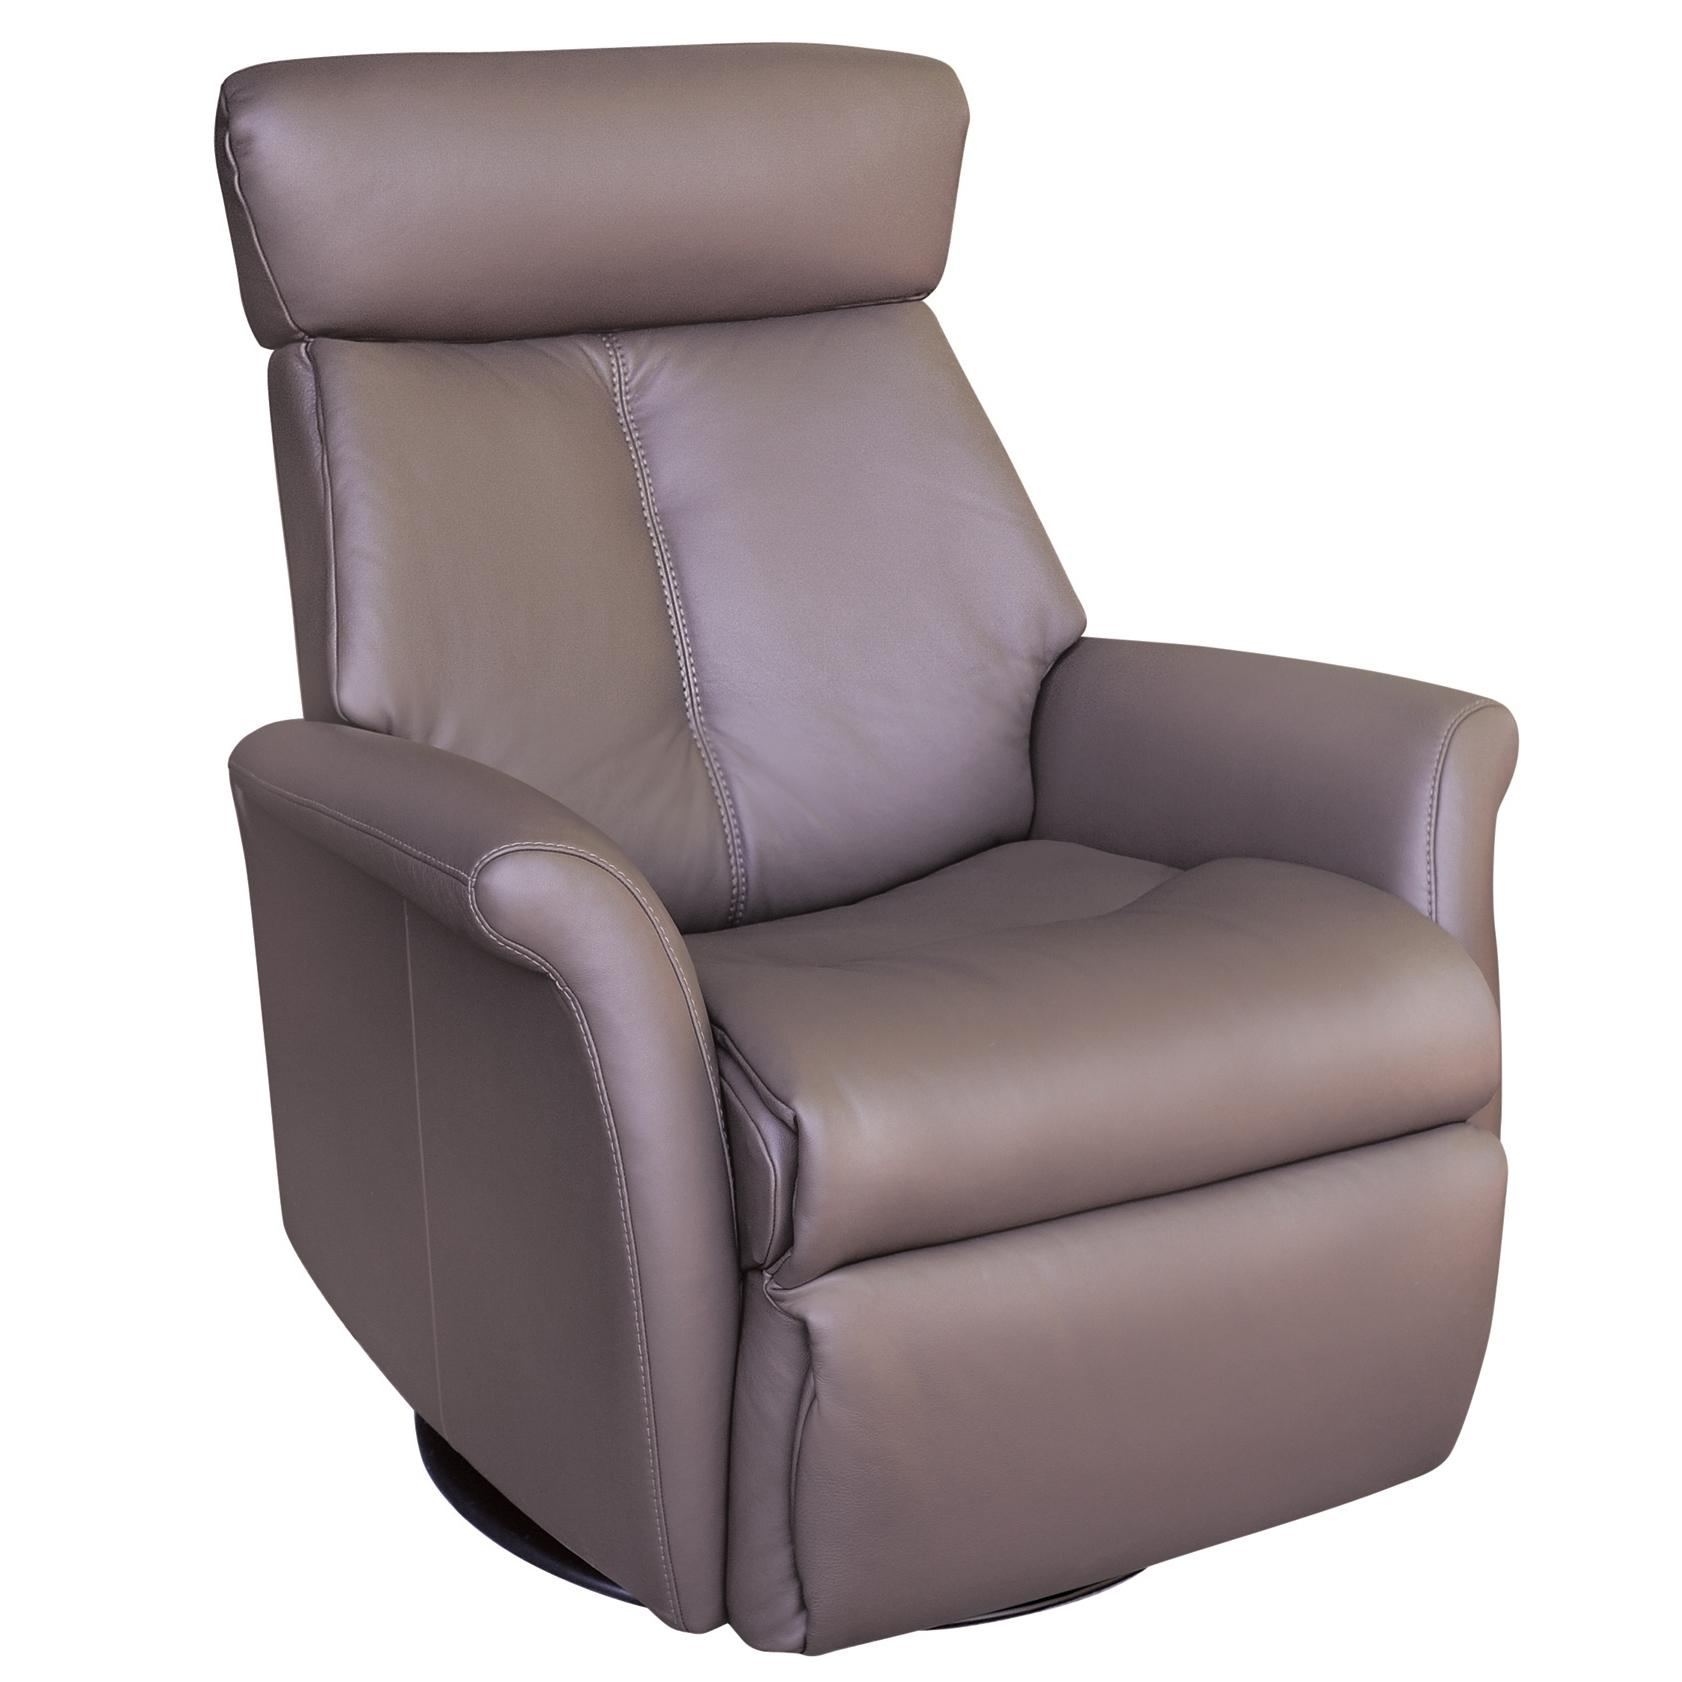 Recliners Recliner Relaxer by IMG Norway at Story & Lee Furniture